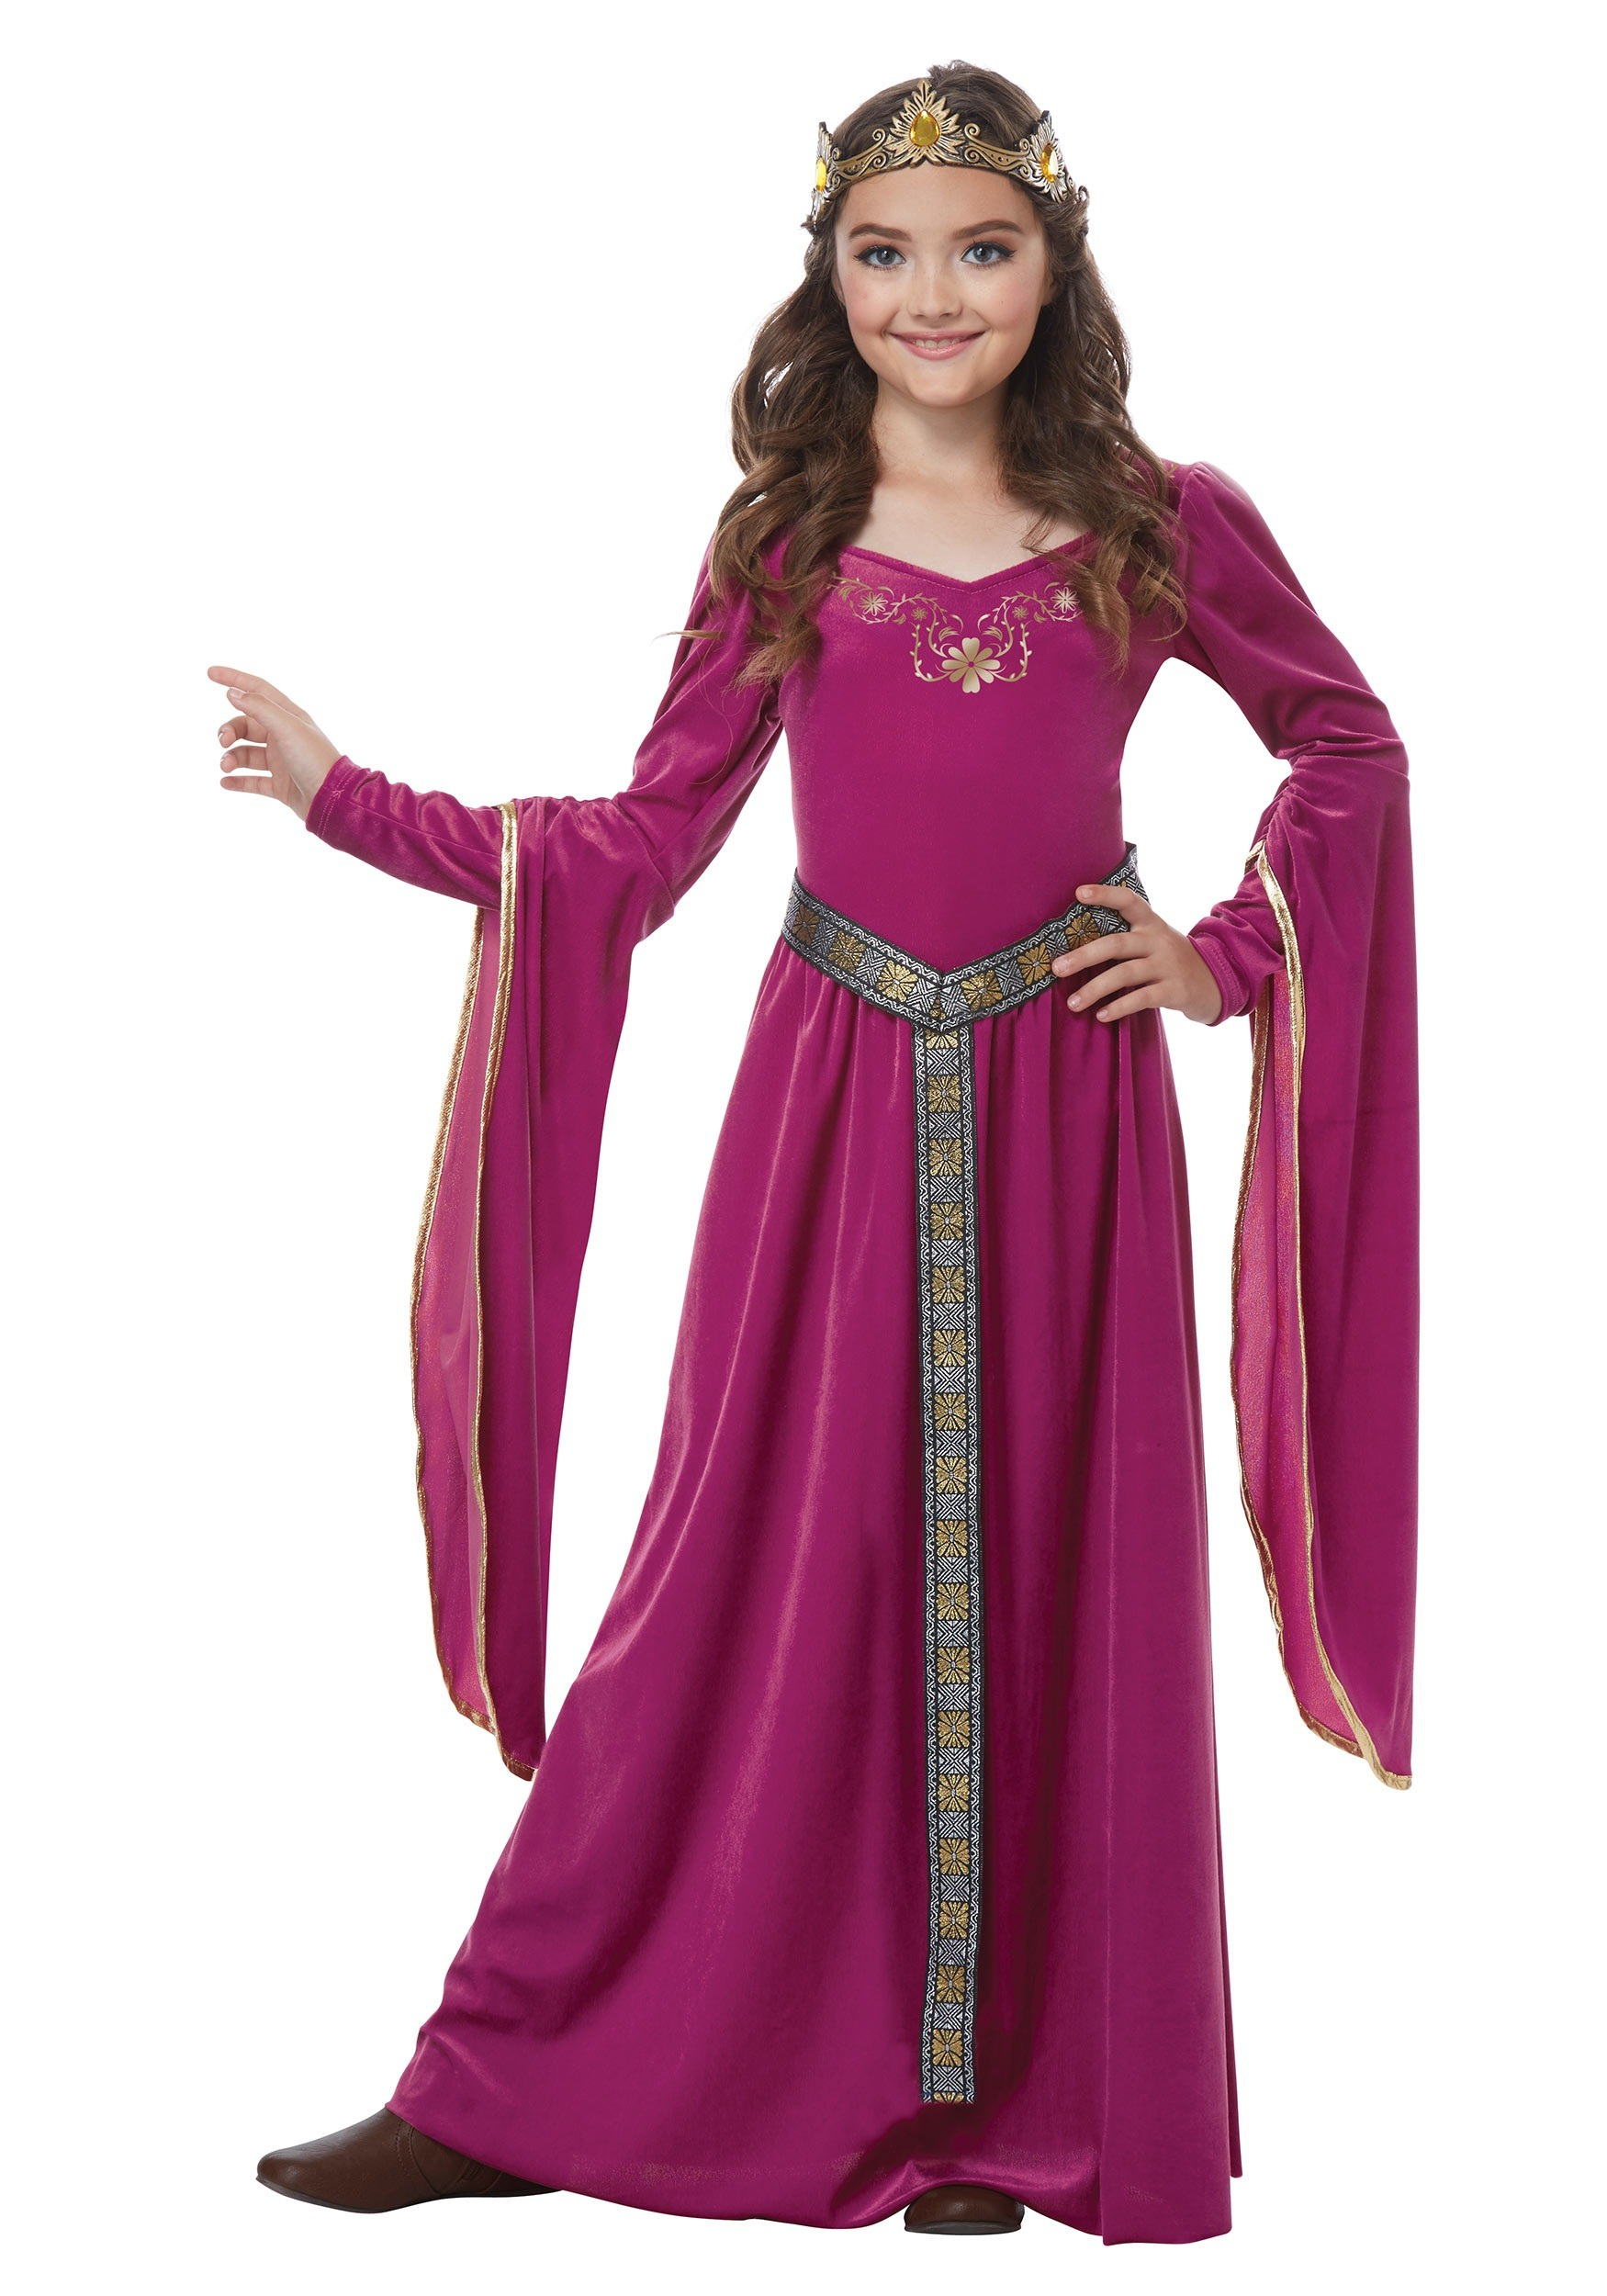 Renaissance costumes medieval clothing girls medieval princess costume solutioingenieria Choice Image